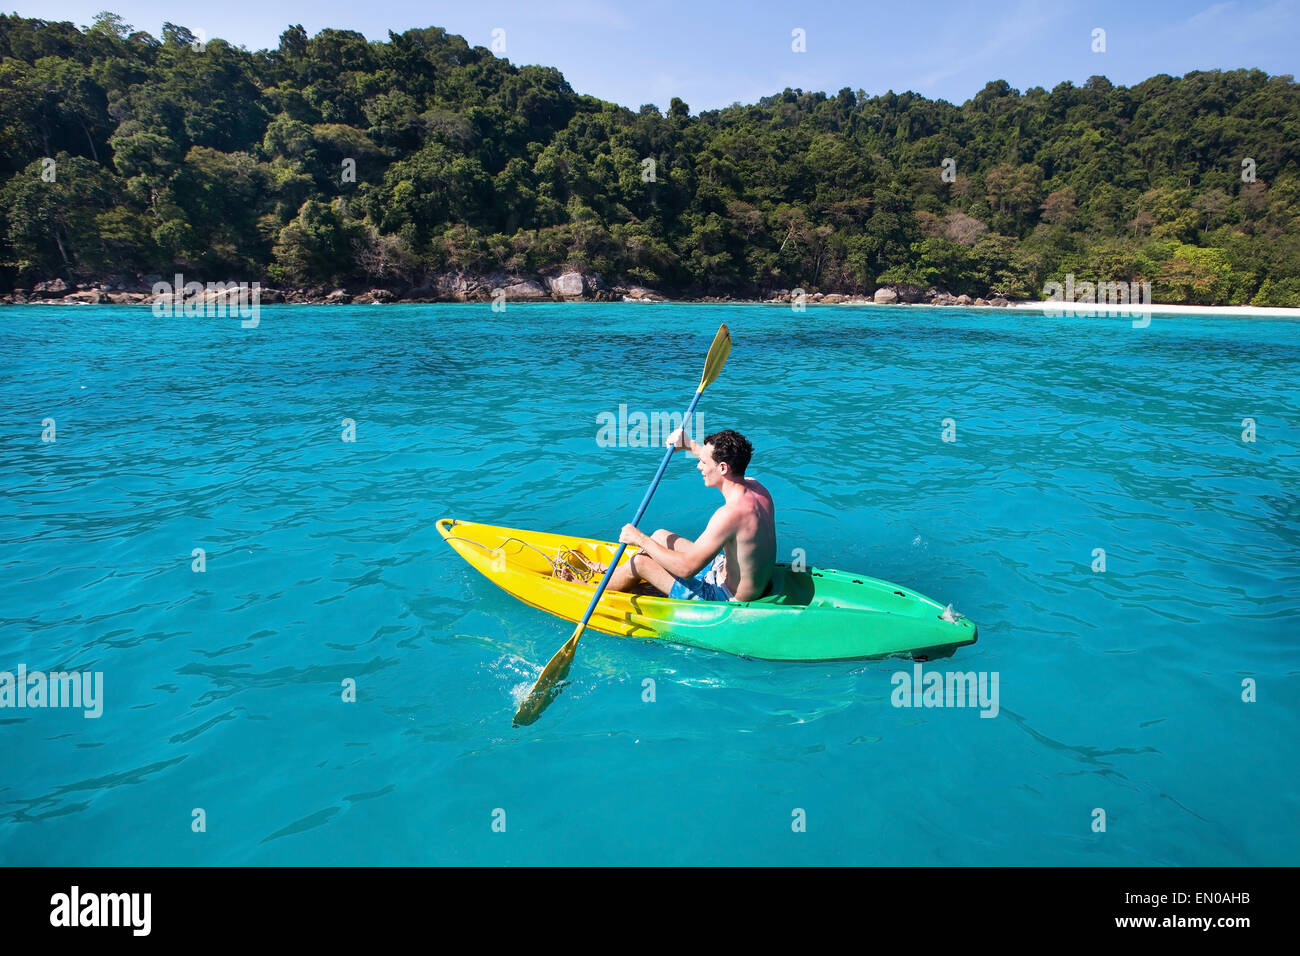 young caucasian man on kayak near paradise island in turquoise water - Stock Image